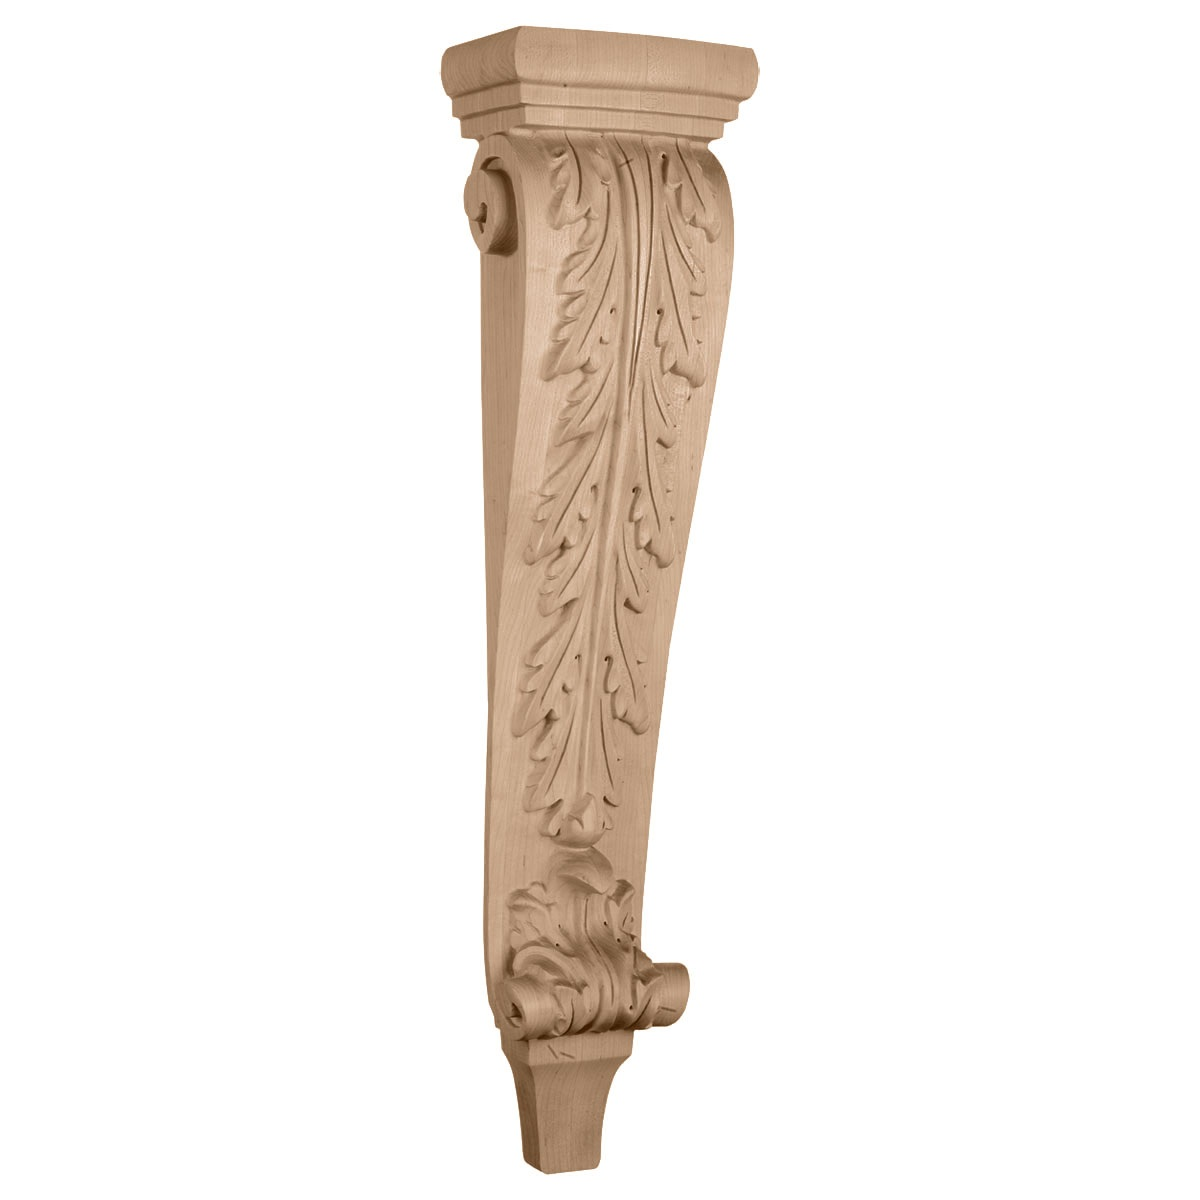 CORPA4 Large Acanthus Pilaster Corbel